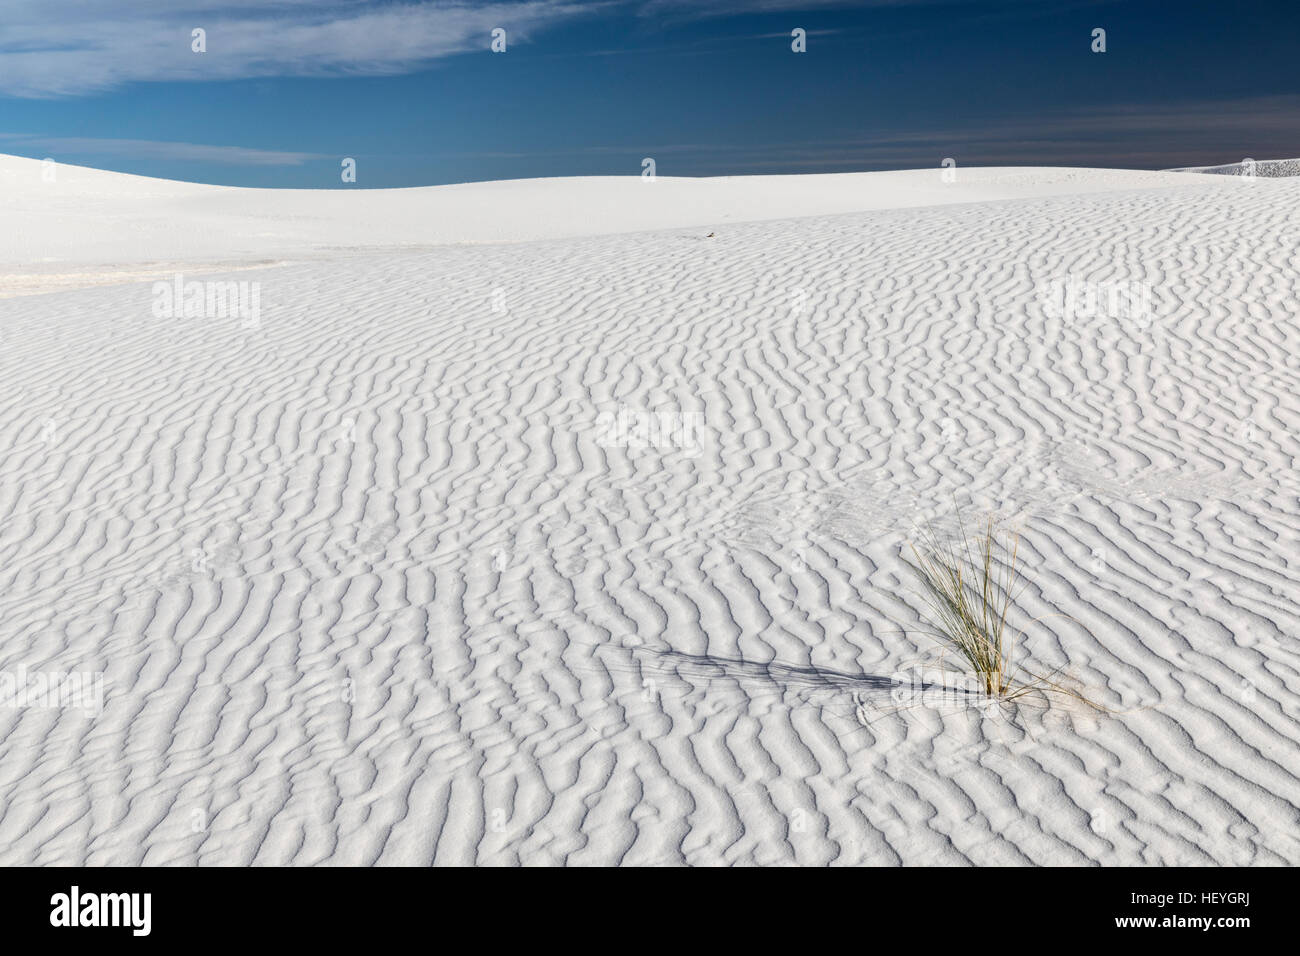 White gypsum sand dune and lone grass plant at White Sands National Monument near Alamogordo, New Mexico, USA - Stock Image